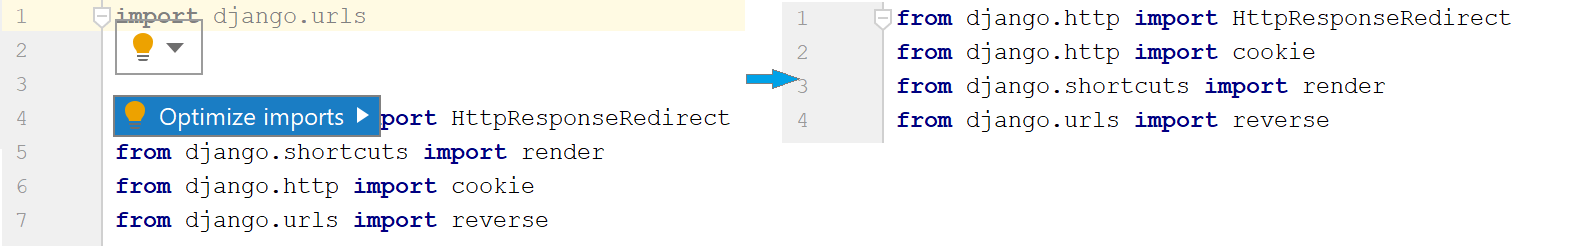 the Optimize imports intention action